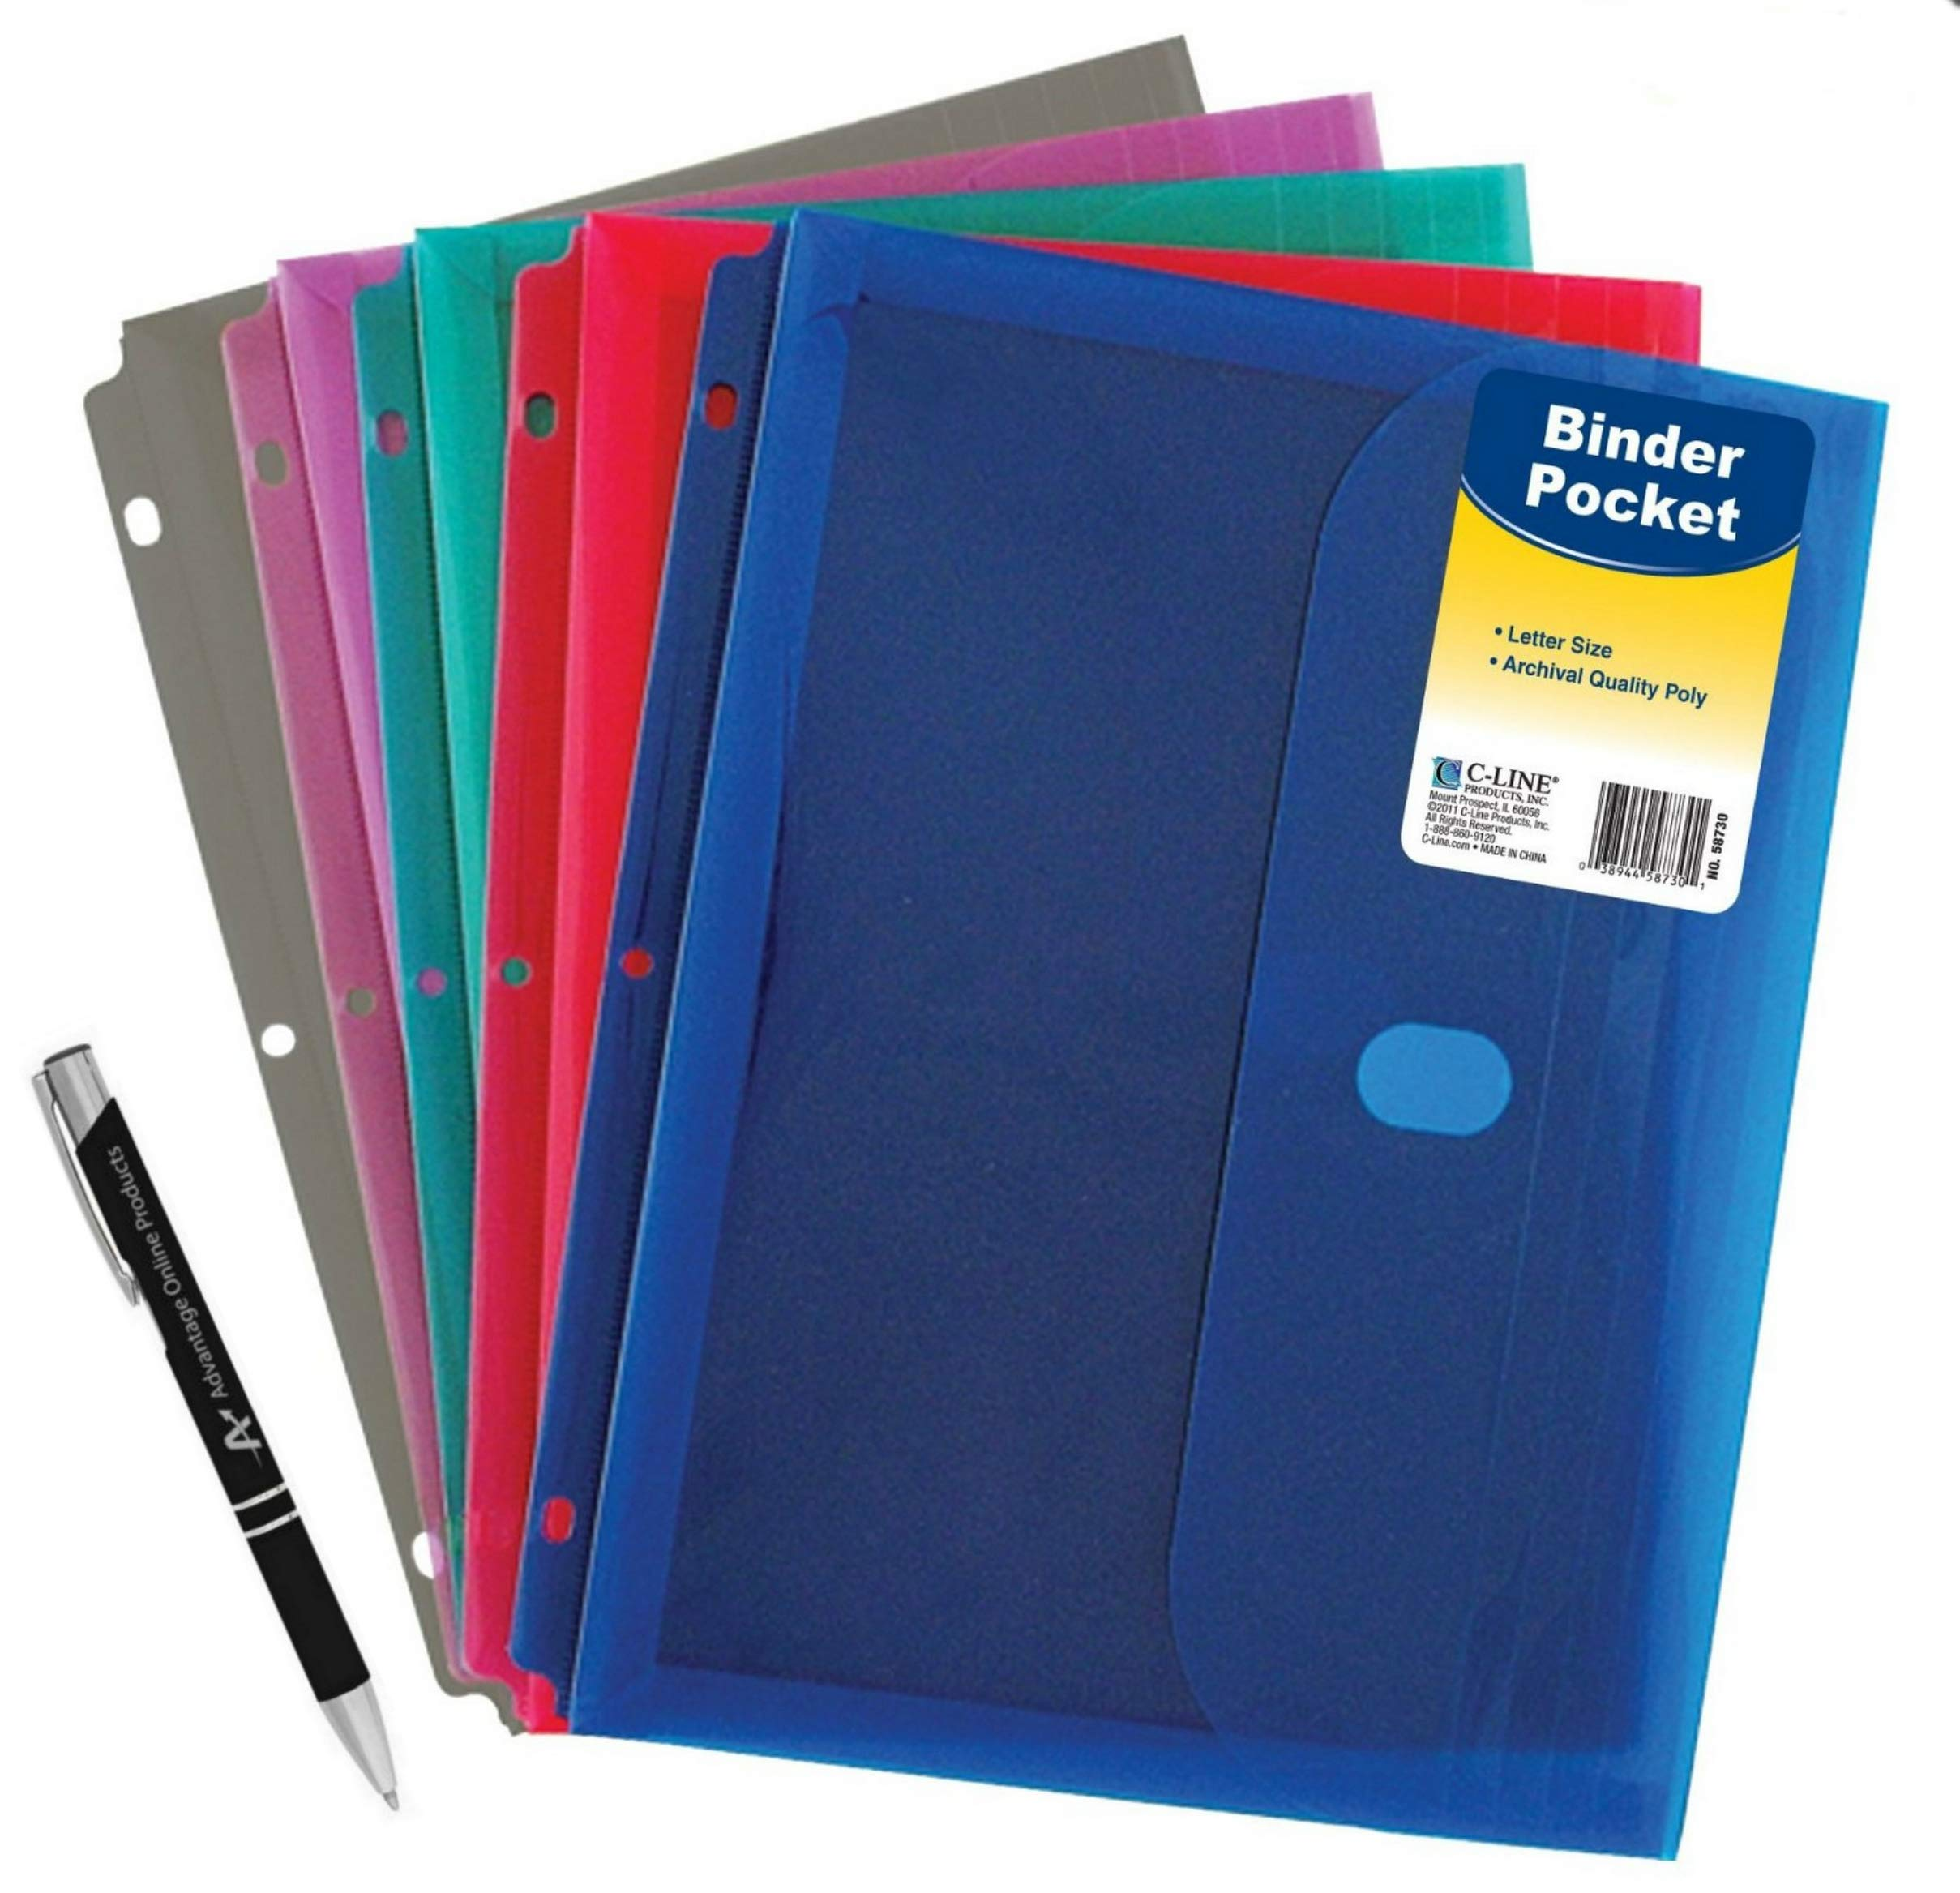 5 Pack Poly Binder Pocket with Hook and Loop Closure, 1-Inch Gusset, Letter Size, Assorted Colors (58730) with Custom Advantage Retractable Chrome and Black Pen